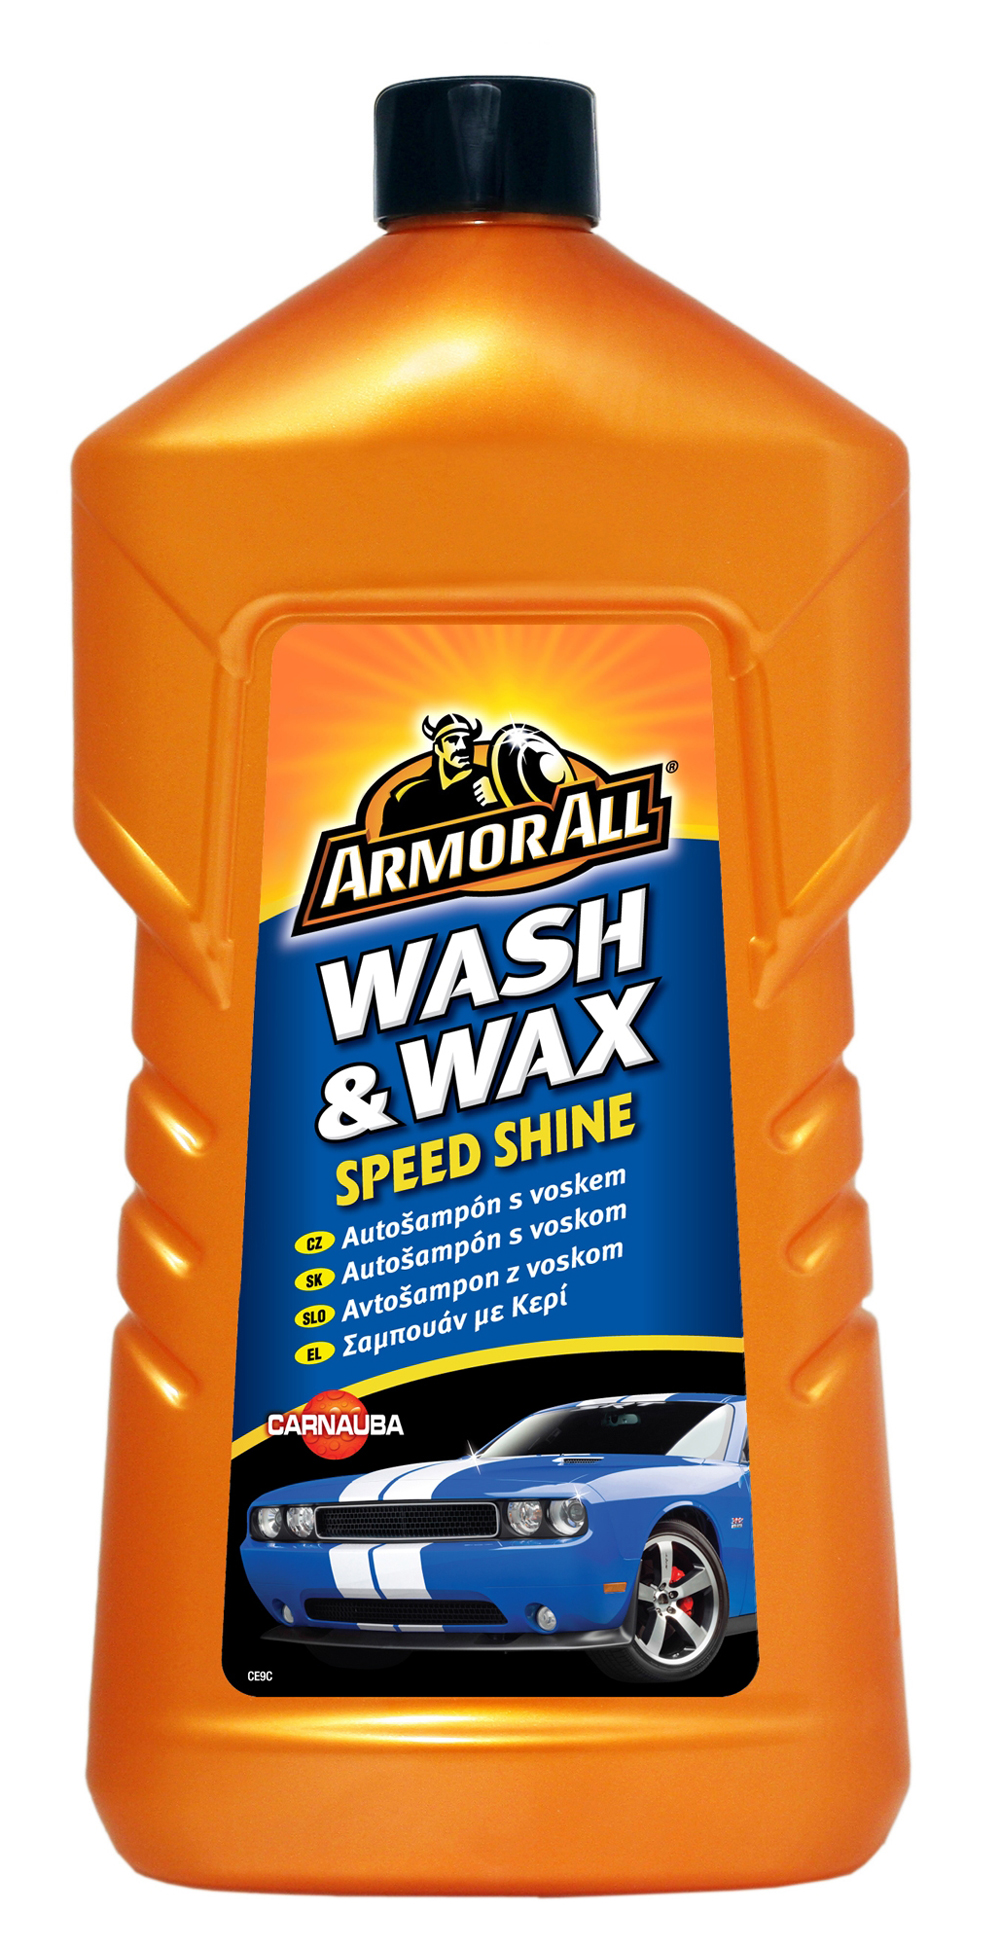 Armor All® WASH & WAX Autošampón s voskem 1l